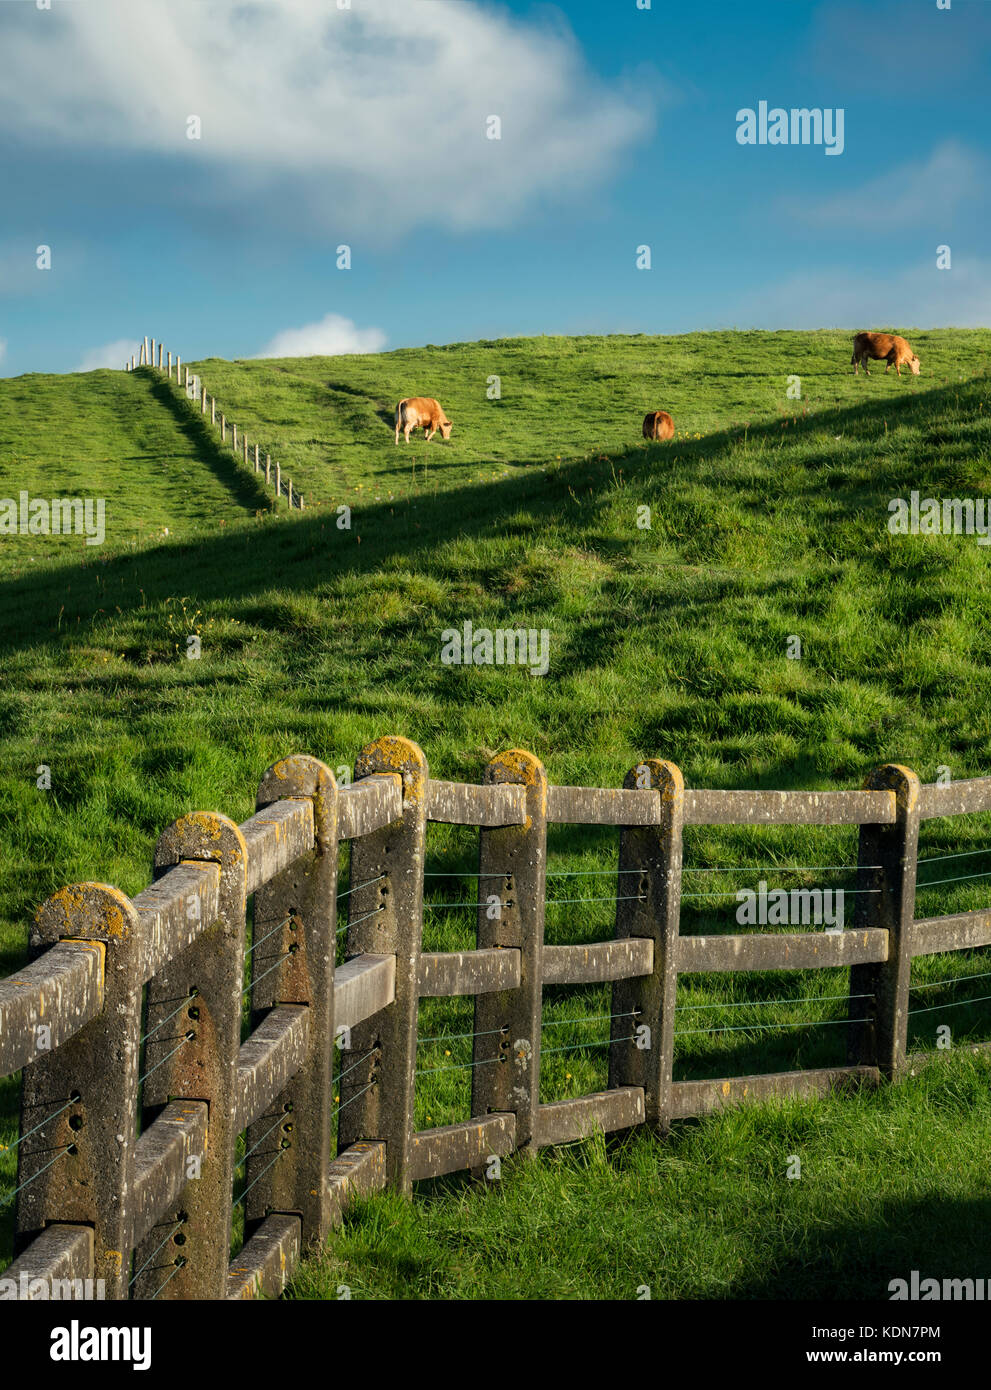 Line Of Cows Stock Photos Amp Line Of Cows Stock Images Alamy